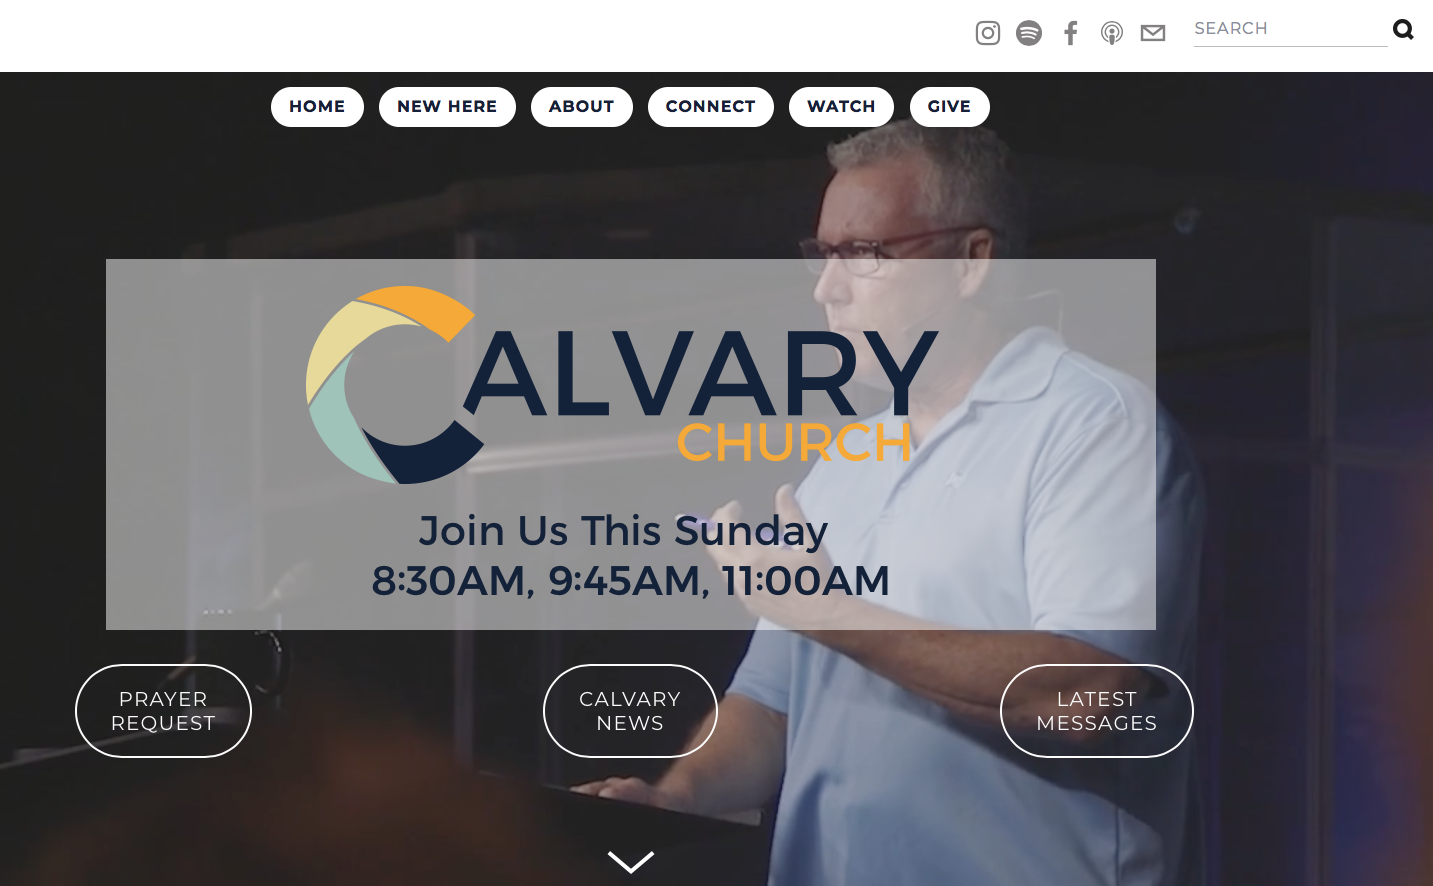 Our Website - At calvarychurchfl.com, you can find our all the happenings at Calvary. For 1st Time Guests, it is a great resource to learn more about ways Calvary supports families in their walk with the Lord. It also lets you know the different ways you can get connected with events and serving. Our website also includes a tremendous Message Library.